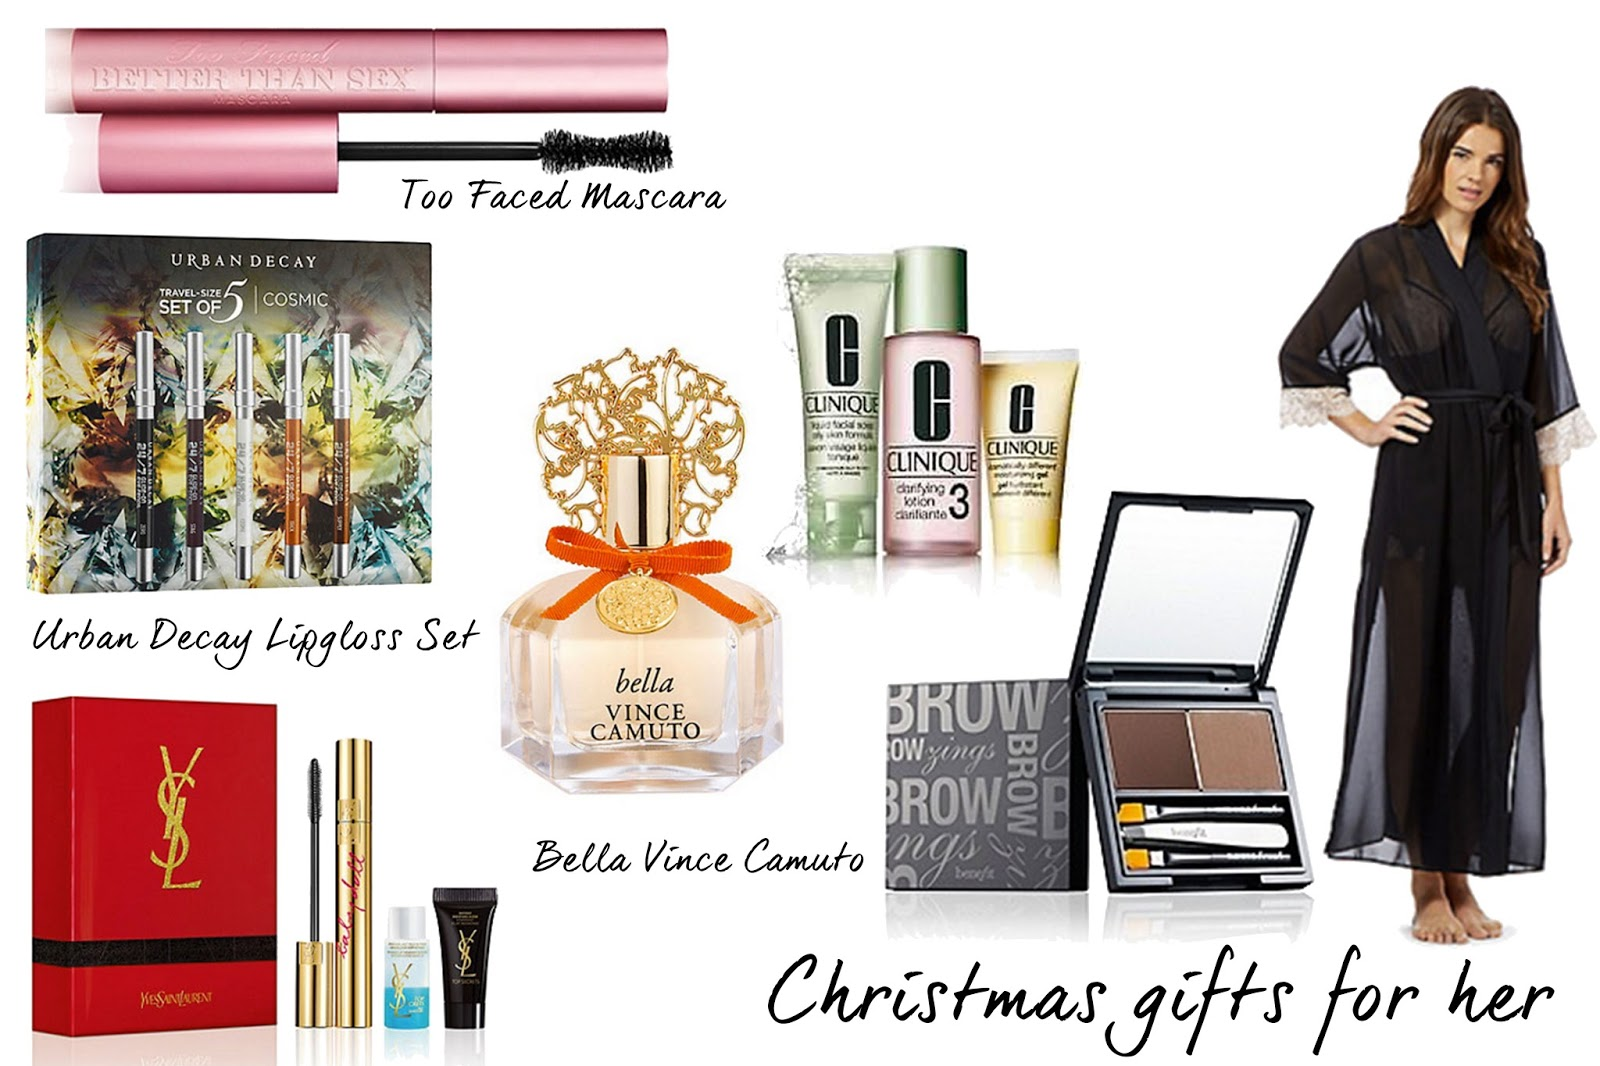 If Like Me You Enjoy Ing The Perfect Present At Christmas Then Look No Further Than Debenhams Gifts For Her Guide There S Everything From Exclusive